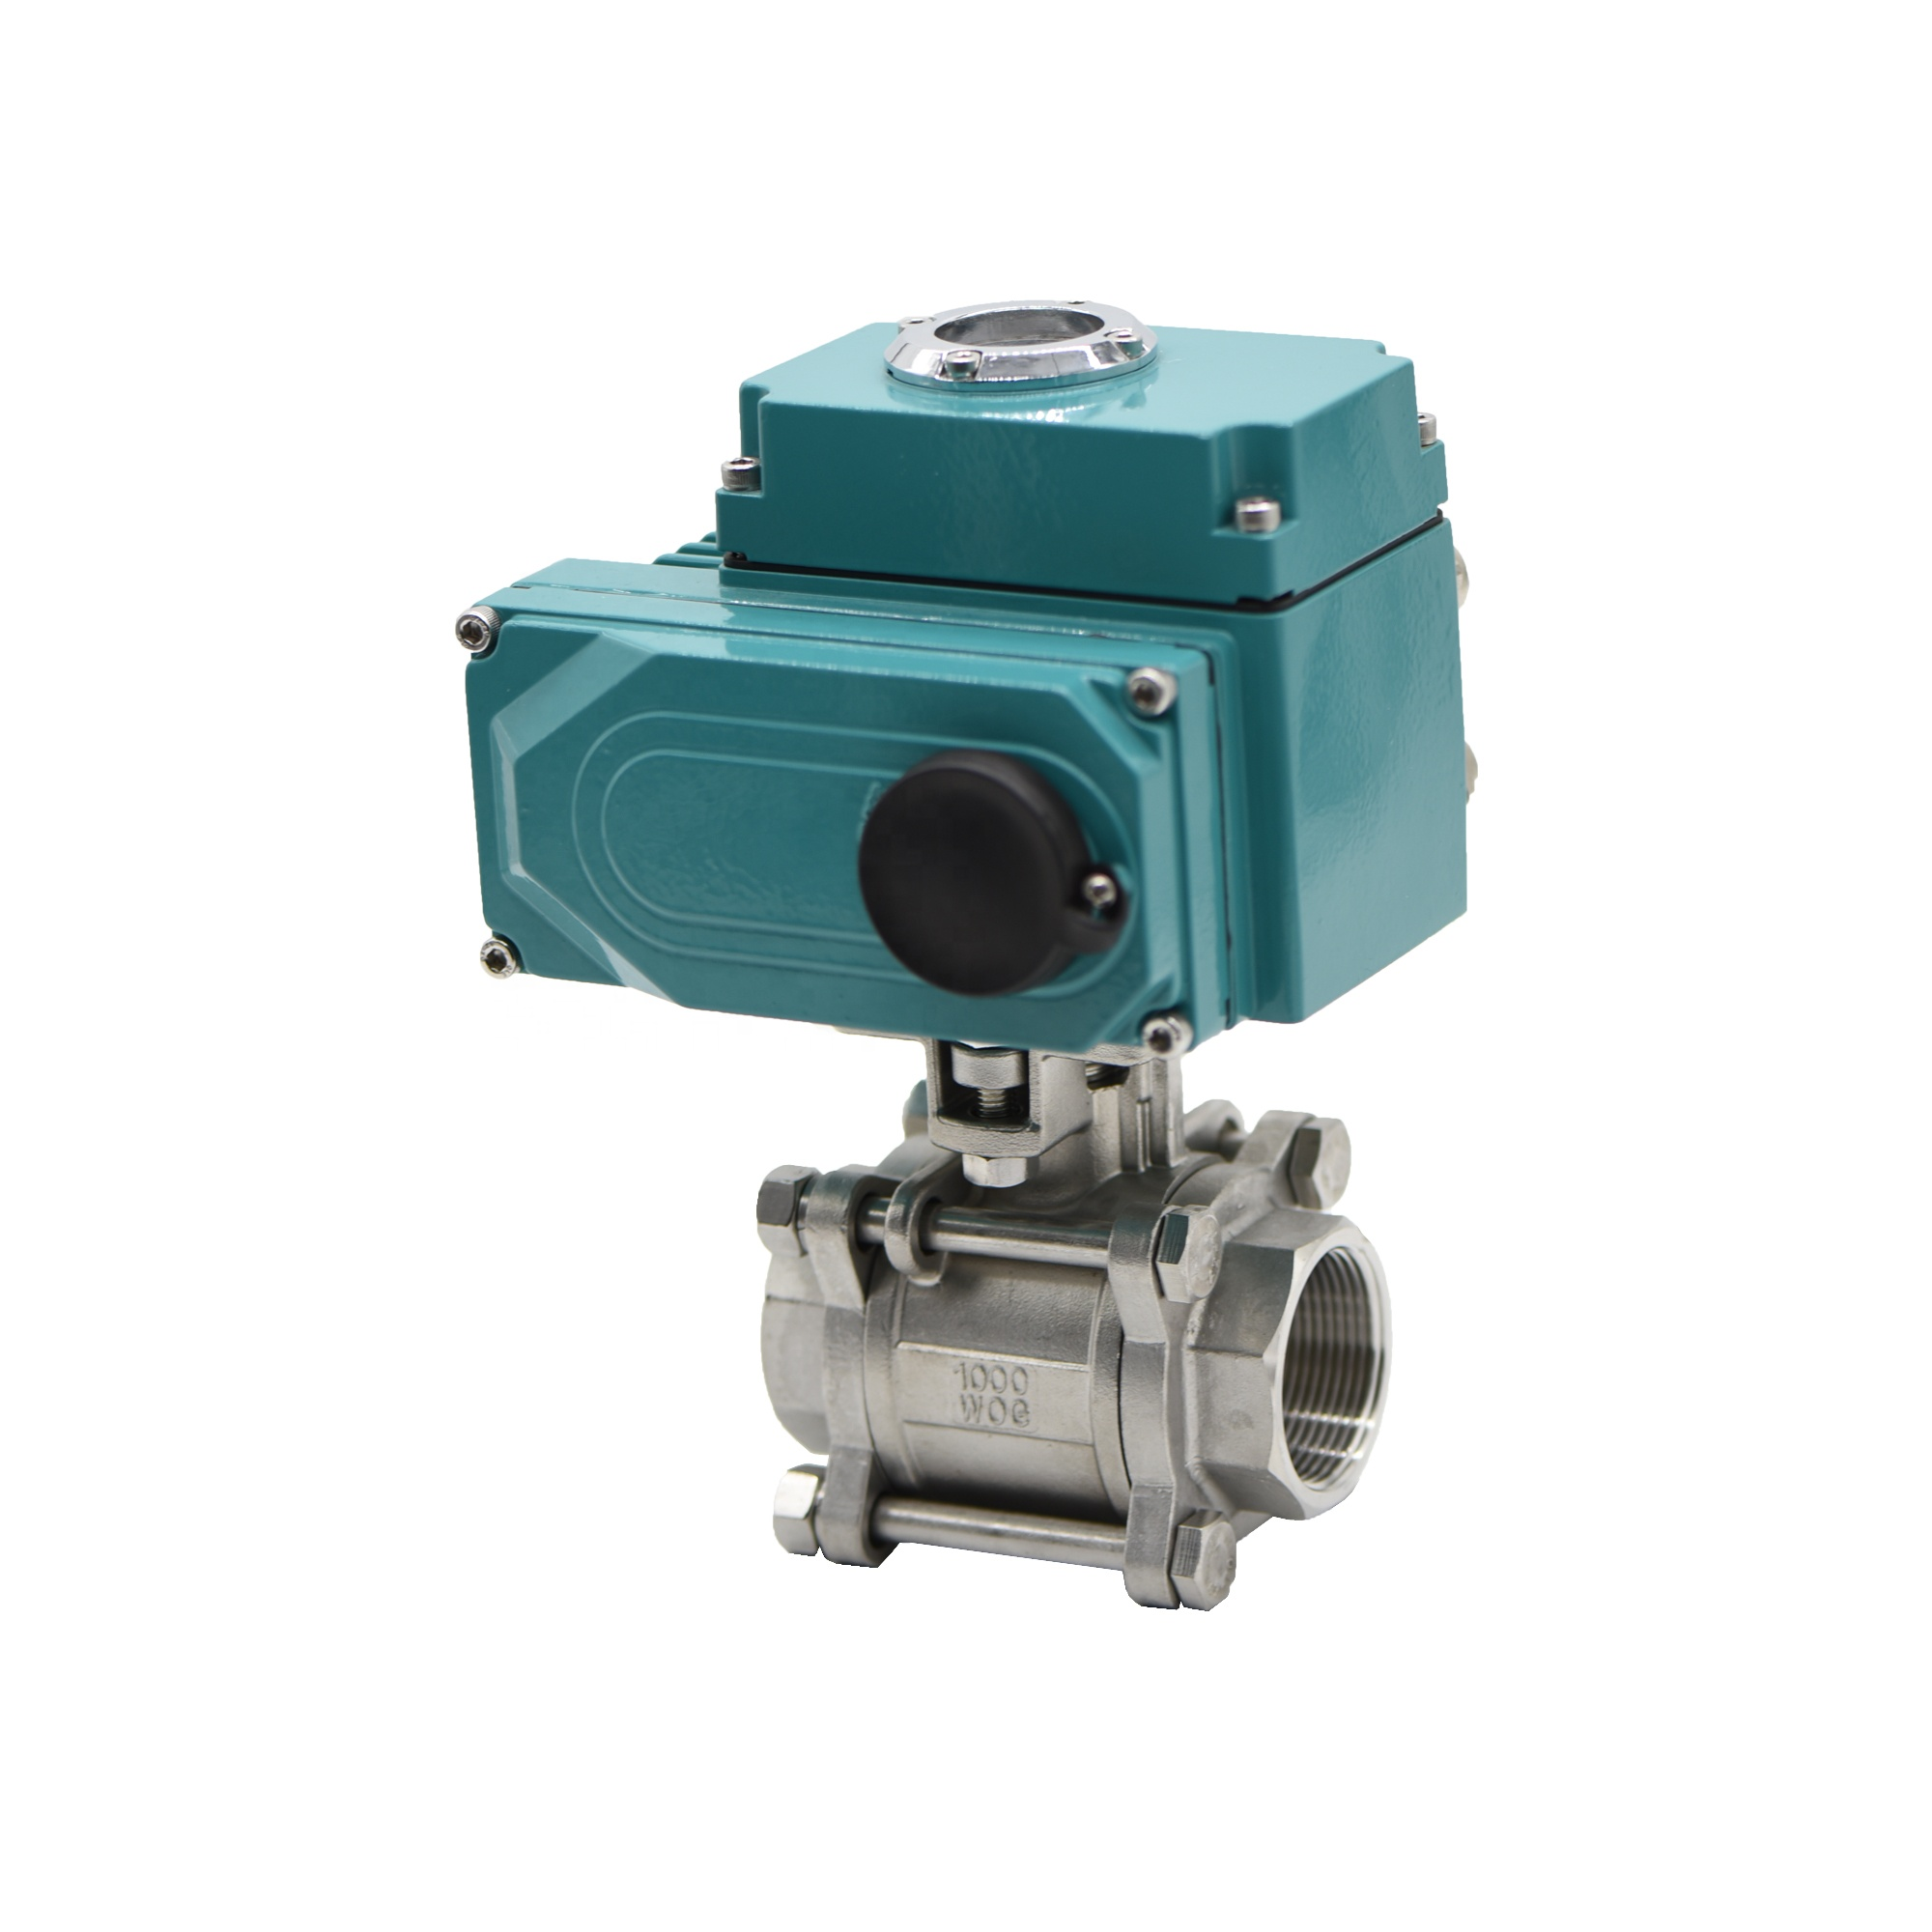 ISO5211 Stainless Steel 3 Piece Ball Valve With HEA Series Quarter Turn Electric Actuator